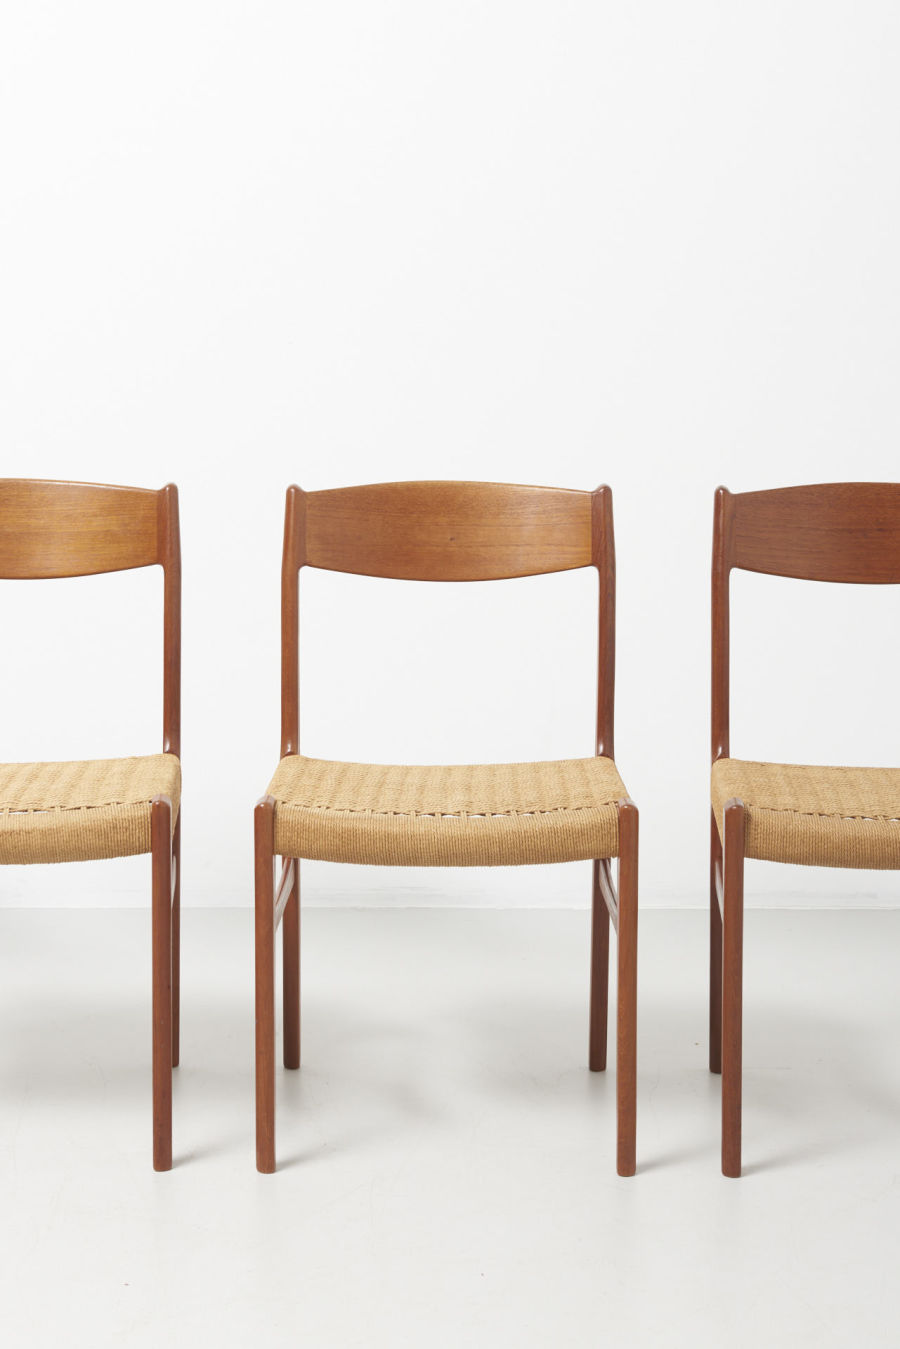 modestfurniture-vintage-2193-chairs-glyngore-papercord02